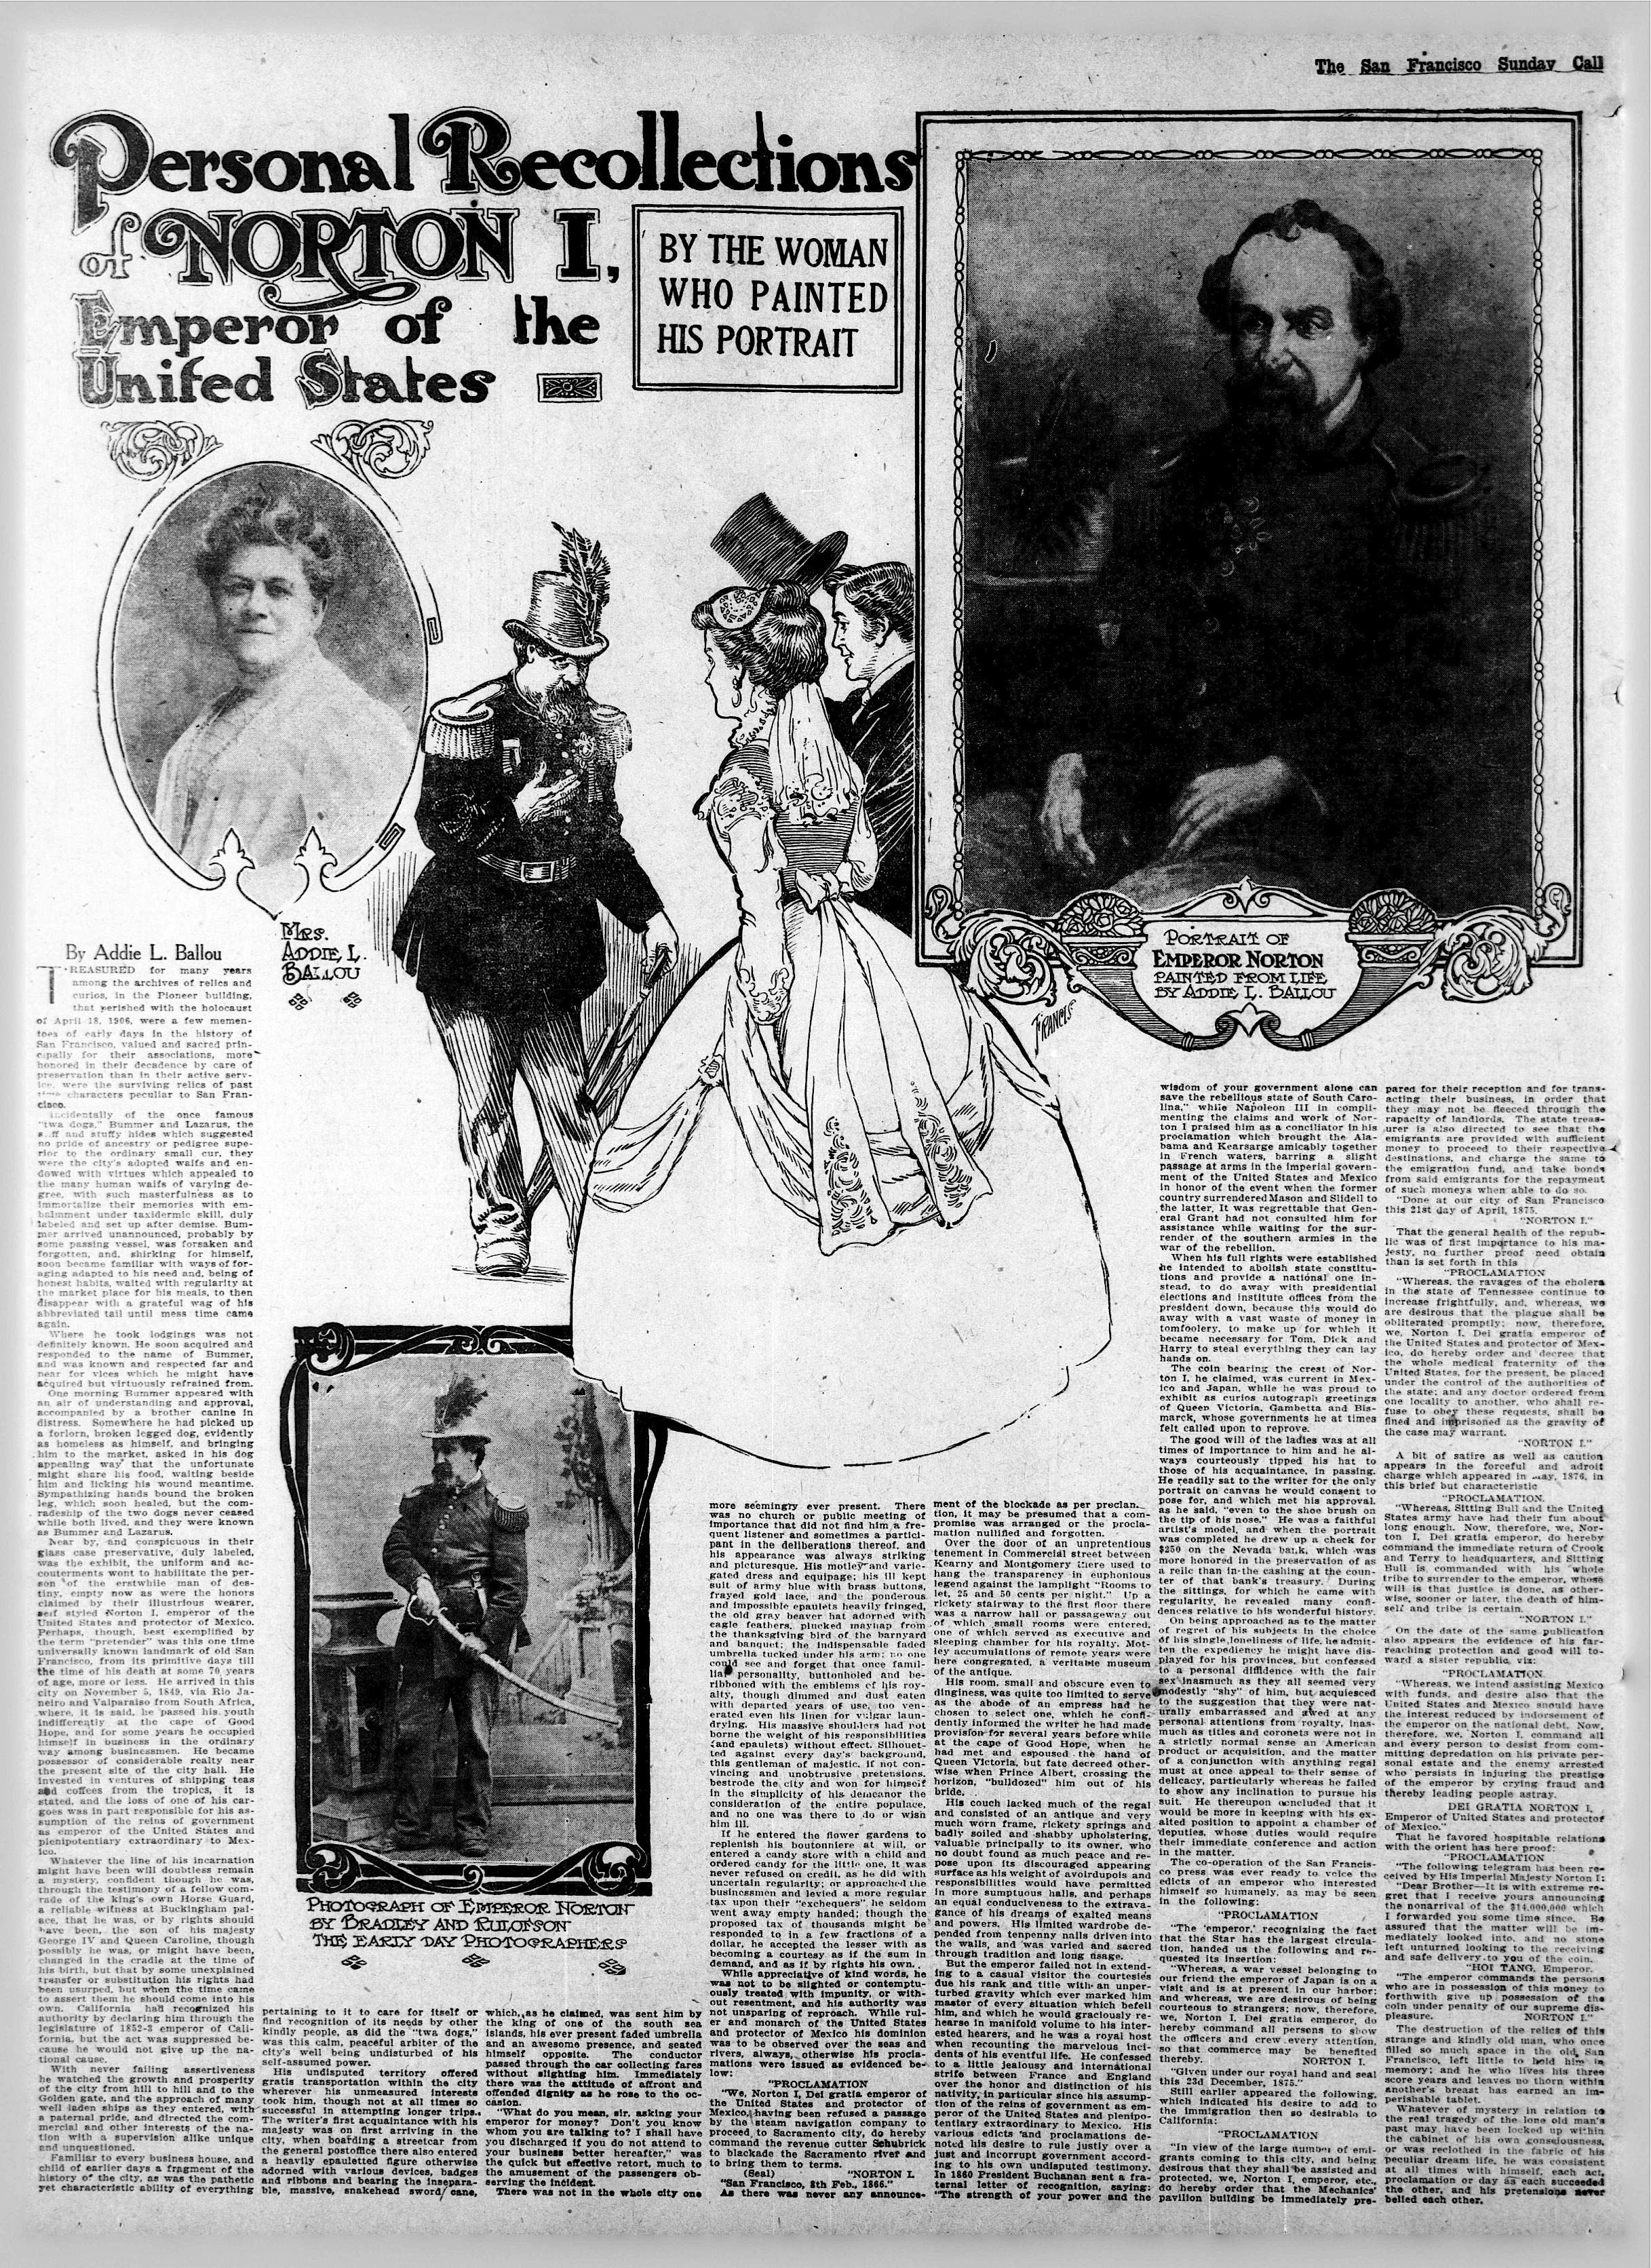 """Illustration in the  San Francisco Call  newspaper of Sunday 27 September 1908.  Artwork for article, """"Personal Recollections of Norton I, Emperor of the United States,"""" by Addie L. Ballou. Source:  California Digital Newspaper Archive ."""